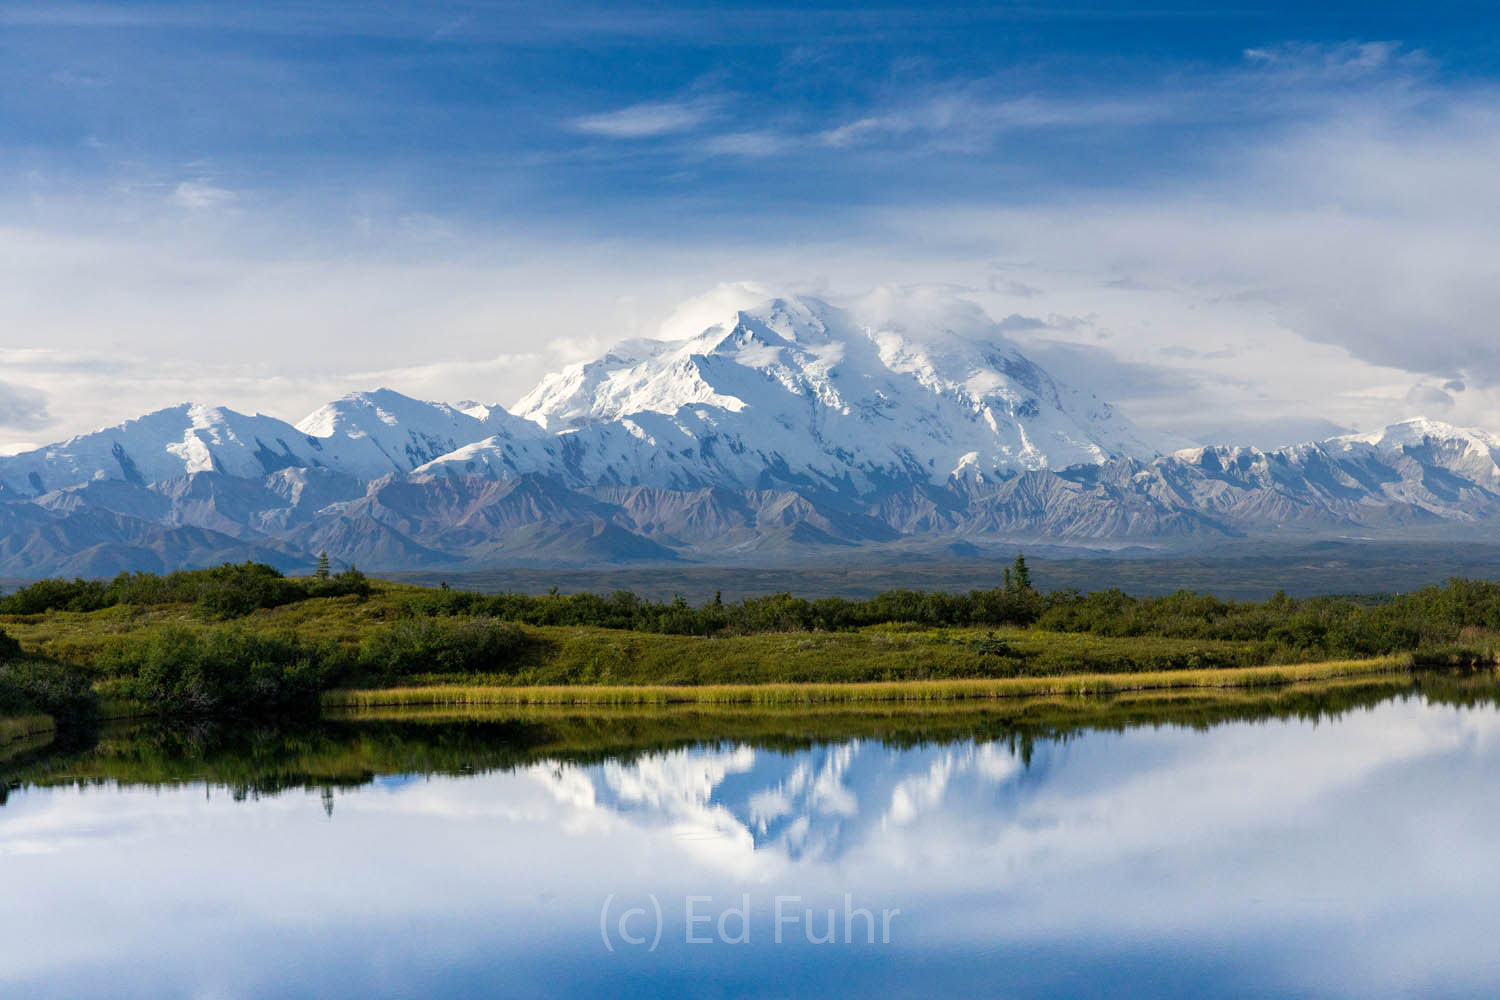 Reflection Pond and Mount Denali